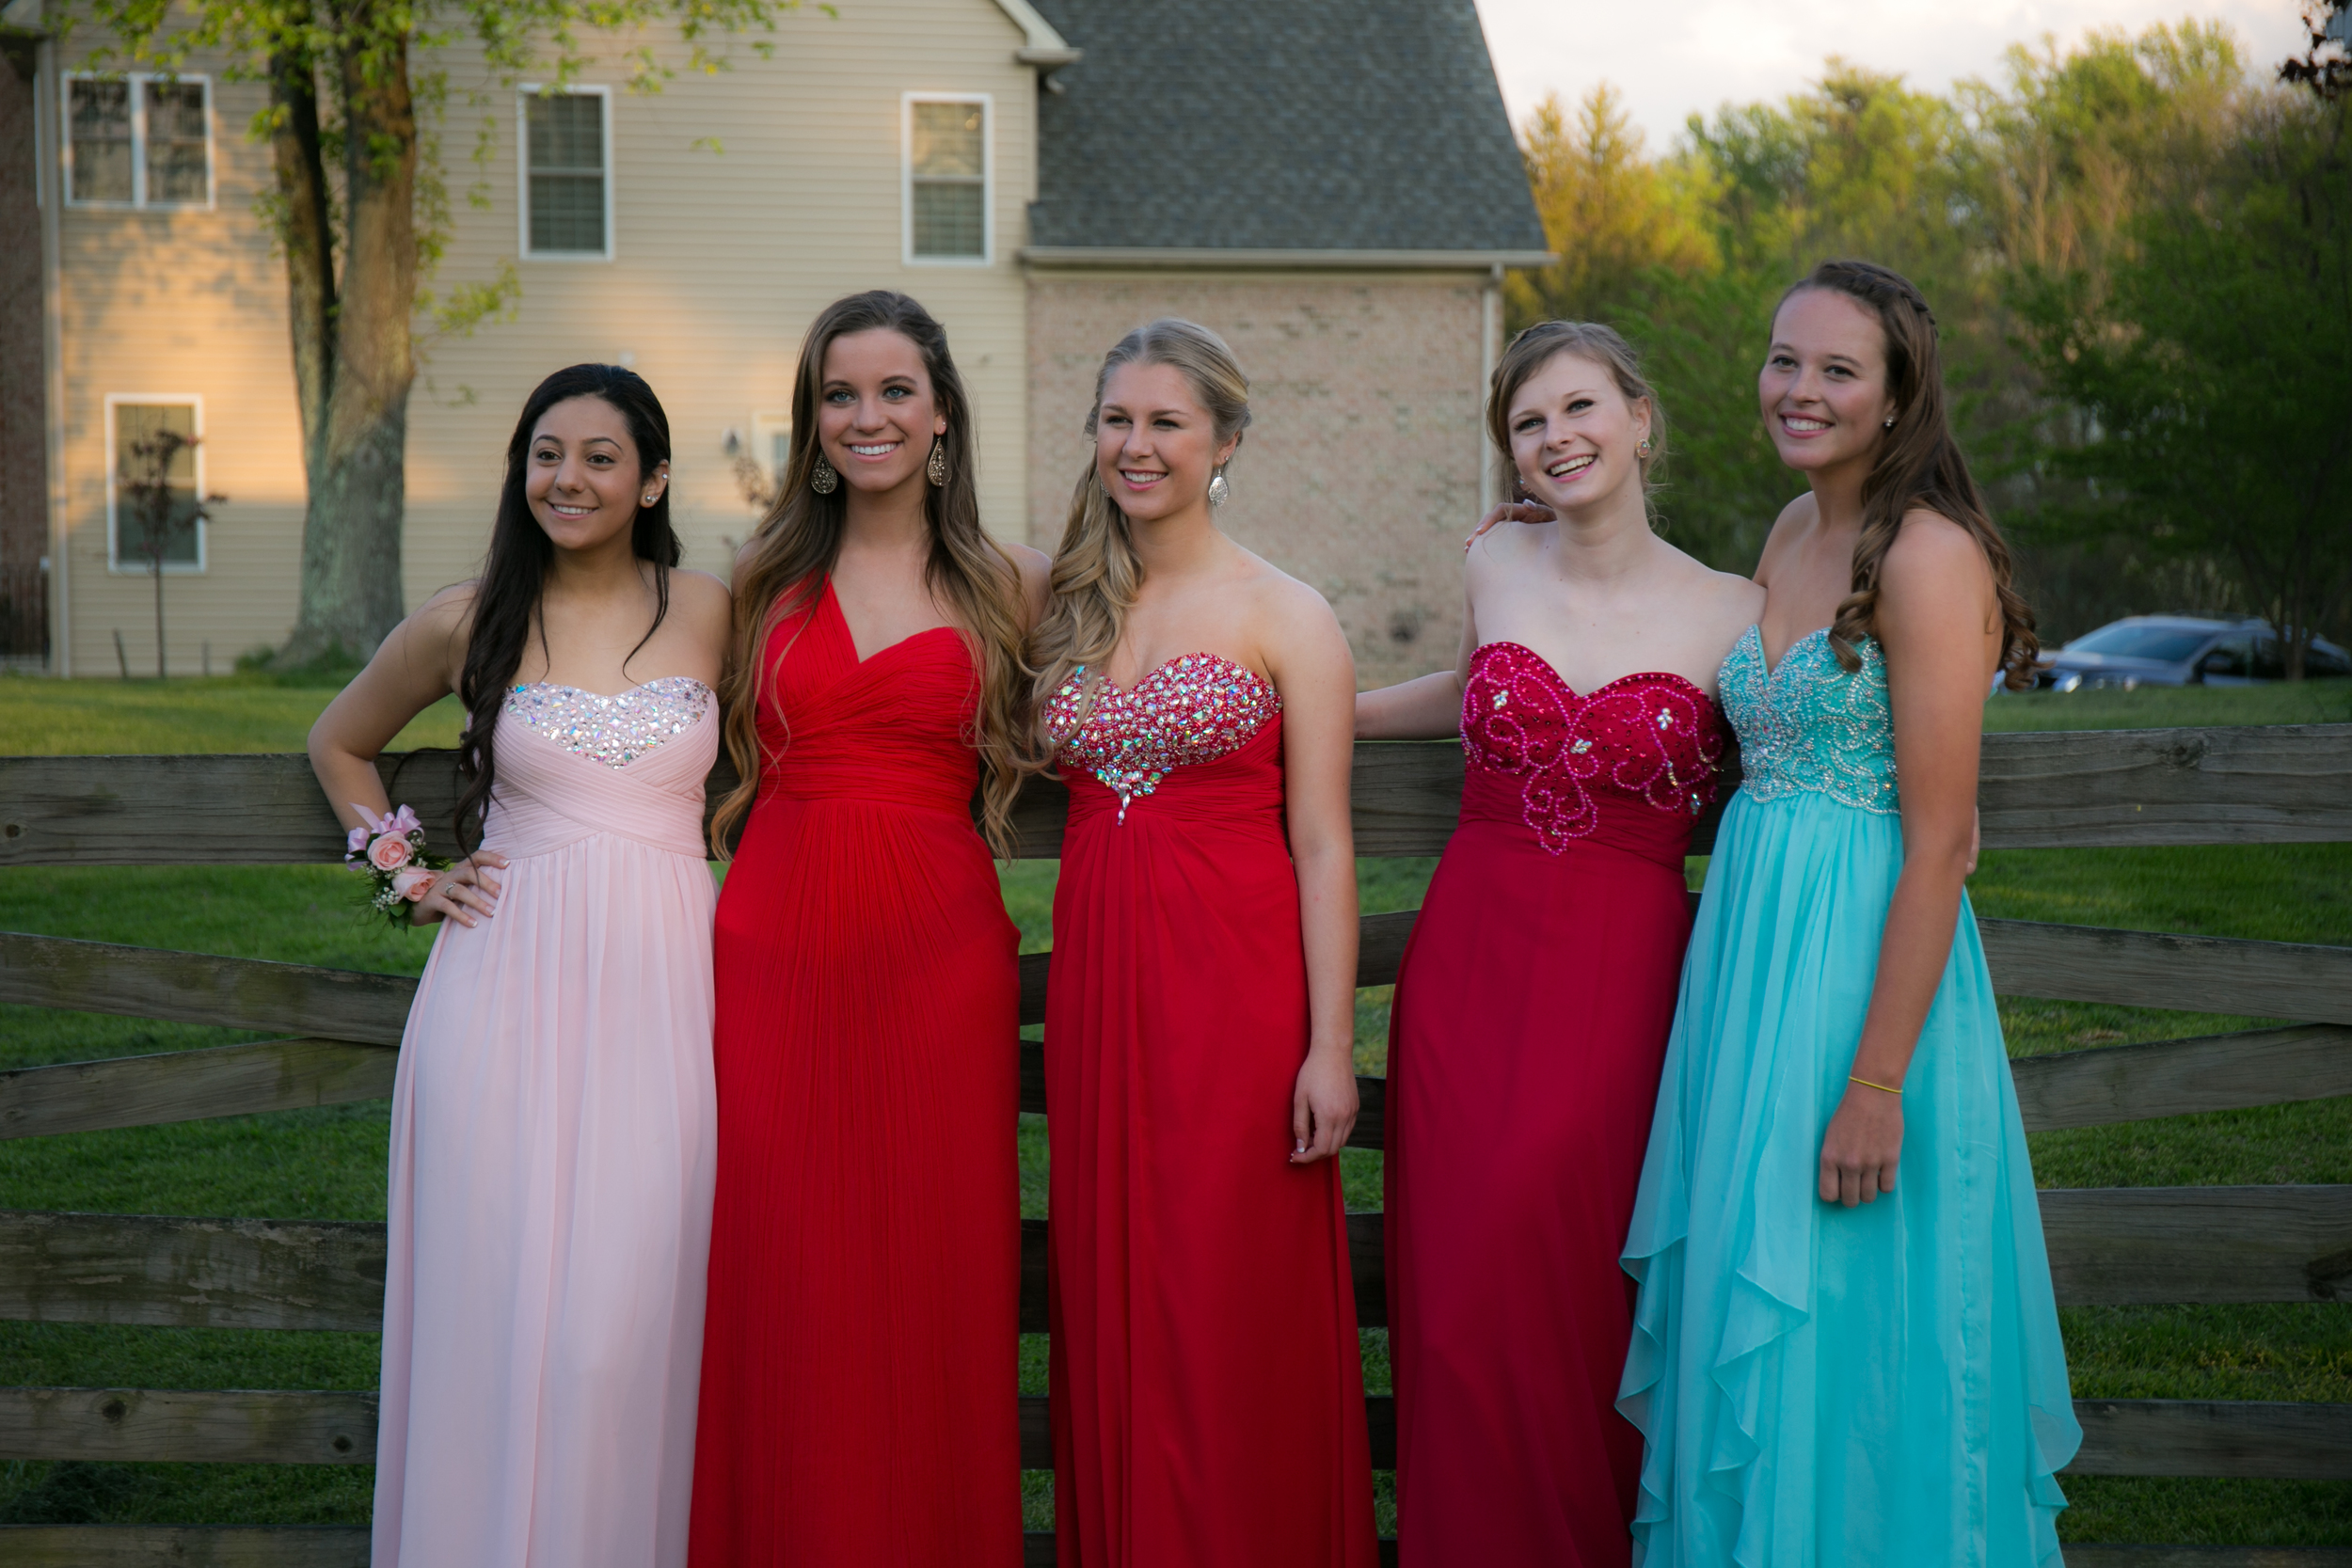 Mount-De-Sales-Pre-Prom-May-2014-126.jpg